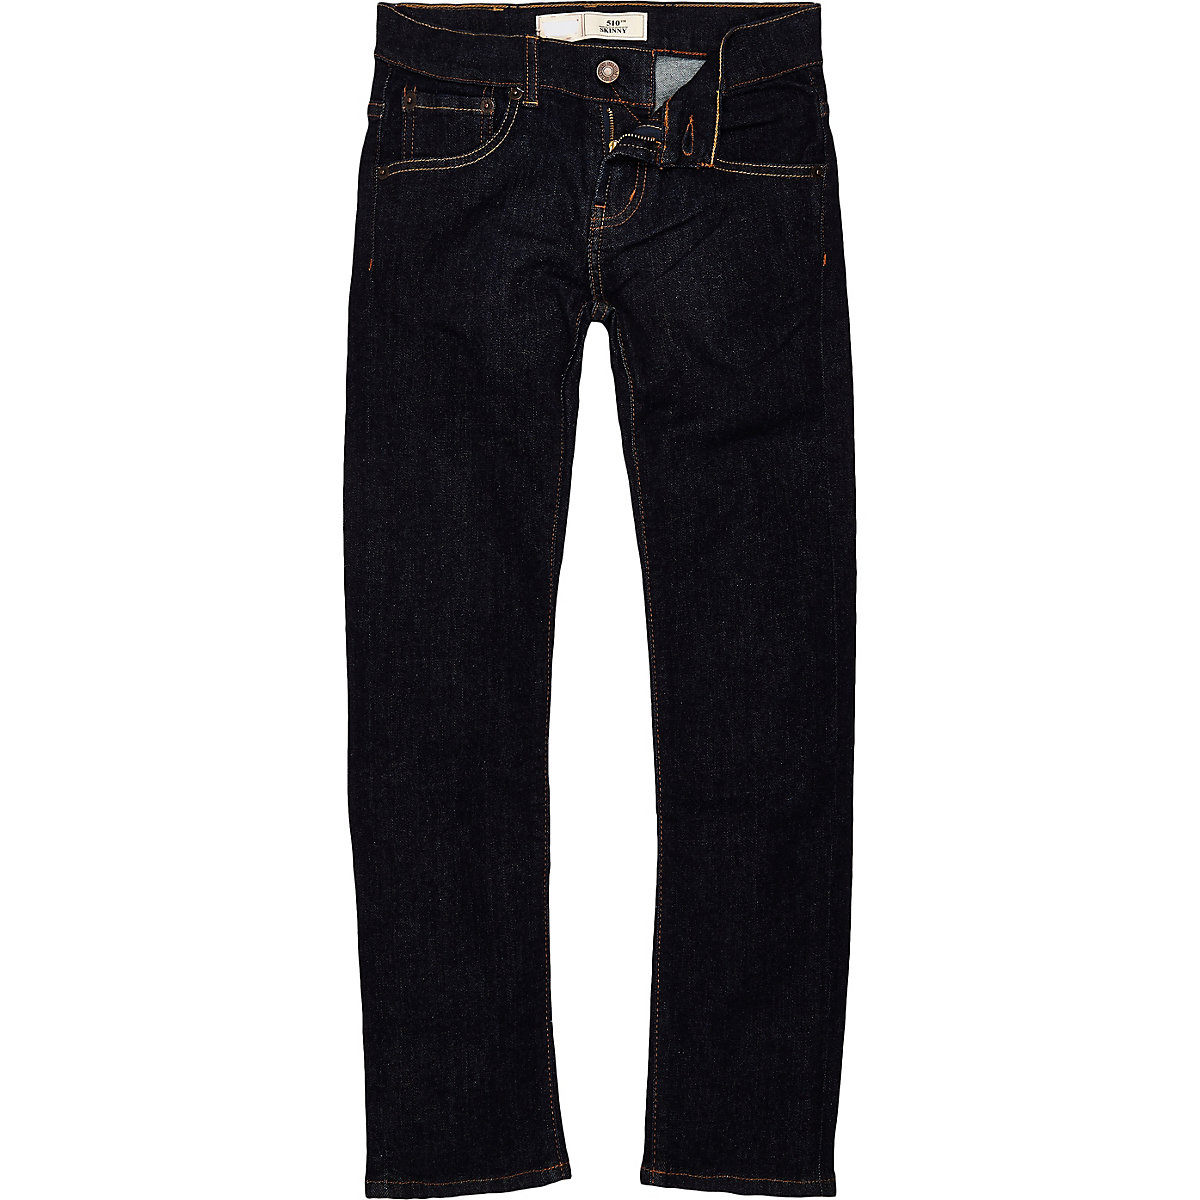 Boys Levi's black skinny denim jeans